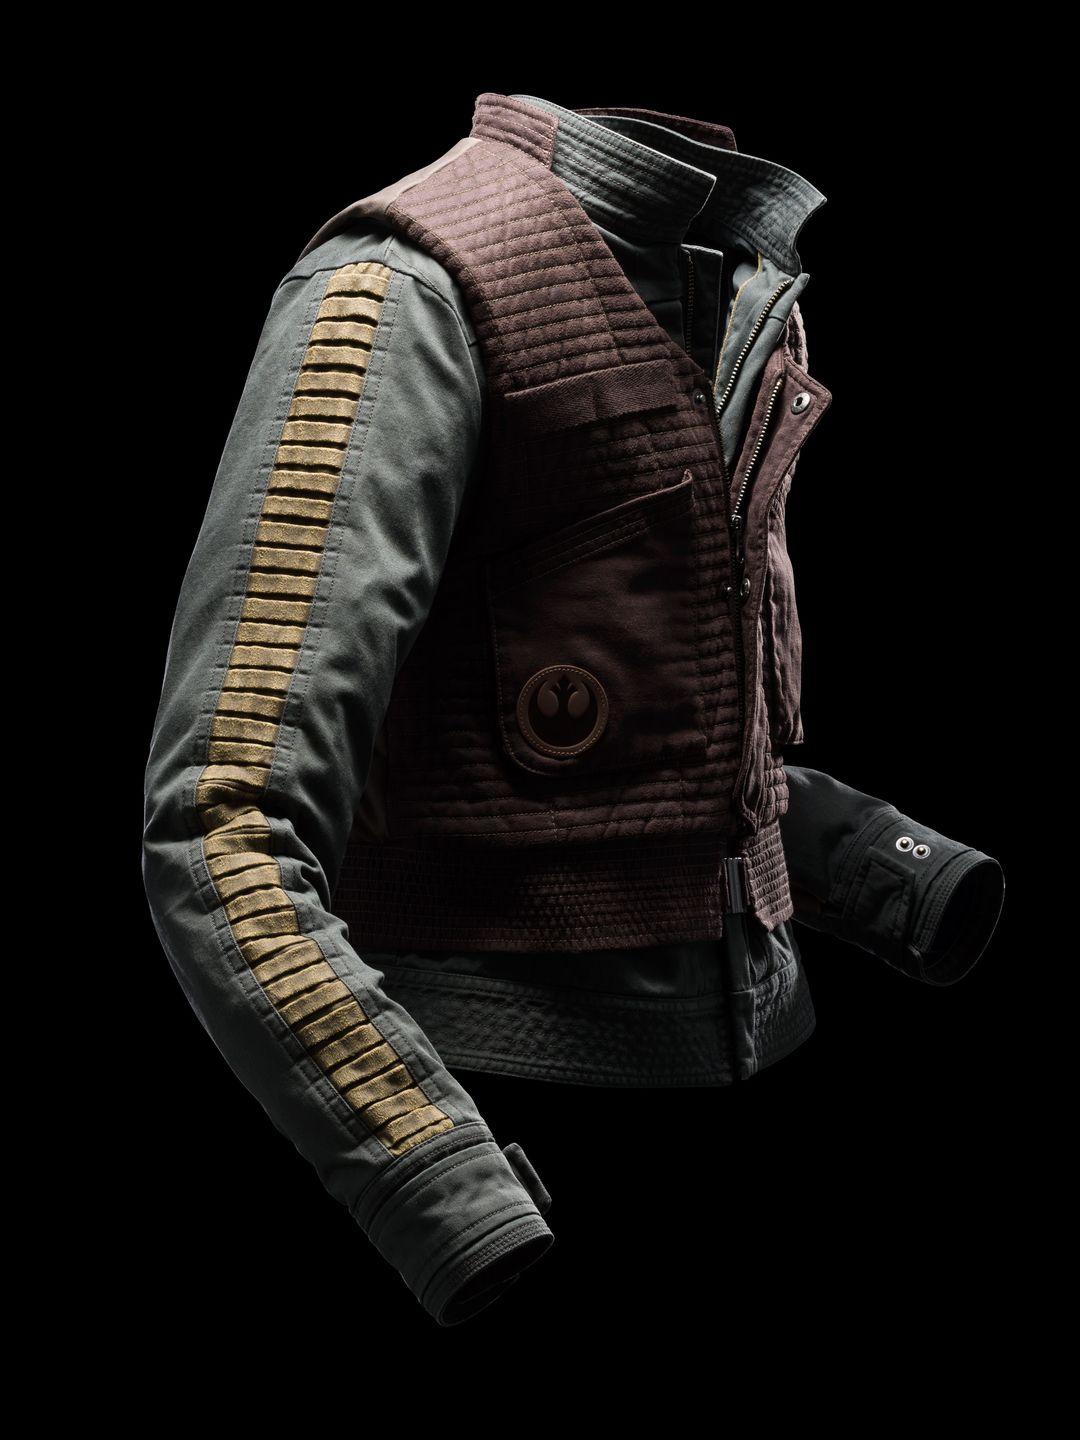 New Rogue One Inspired Jackets From Columbia - Jedi News